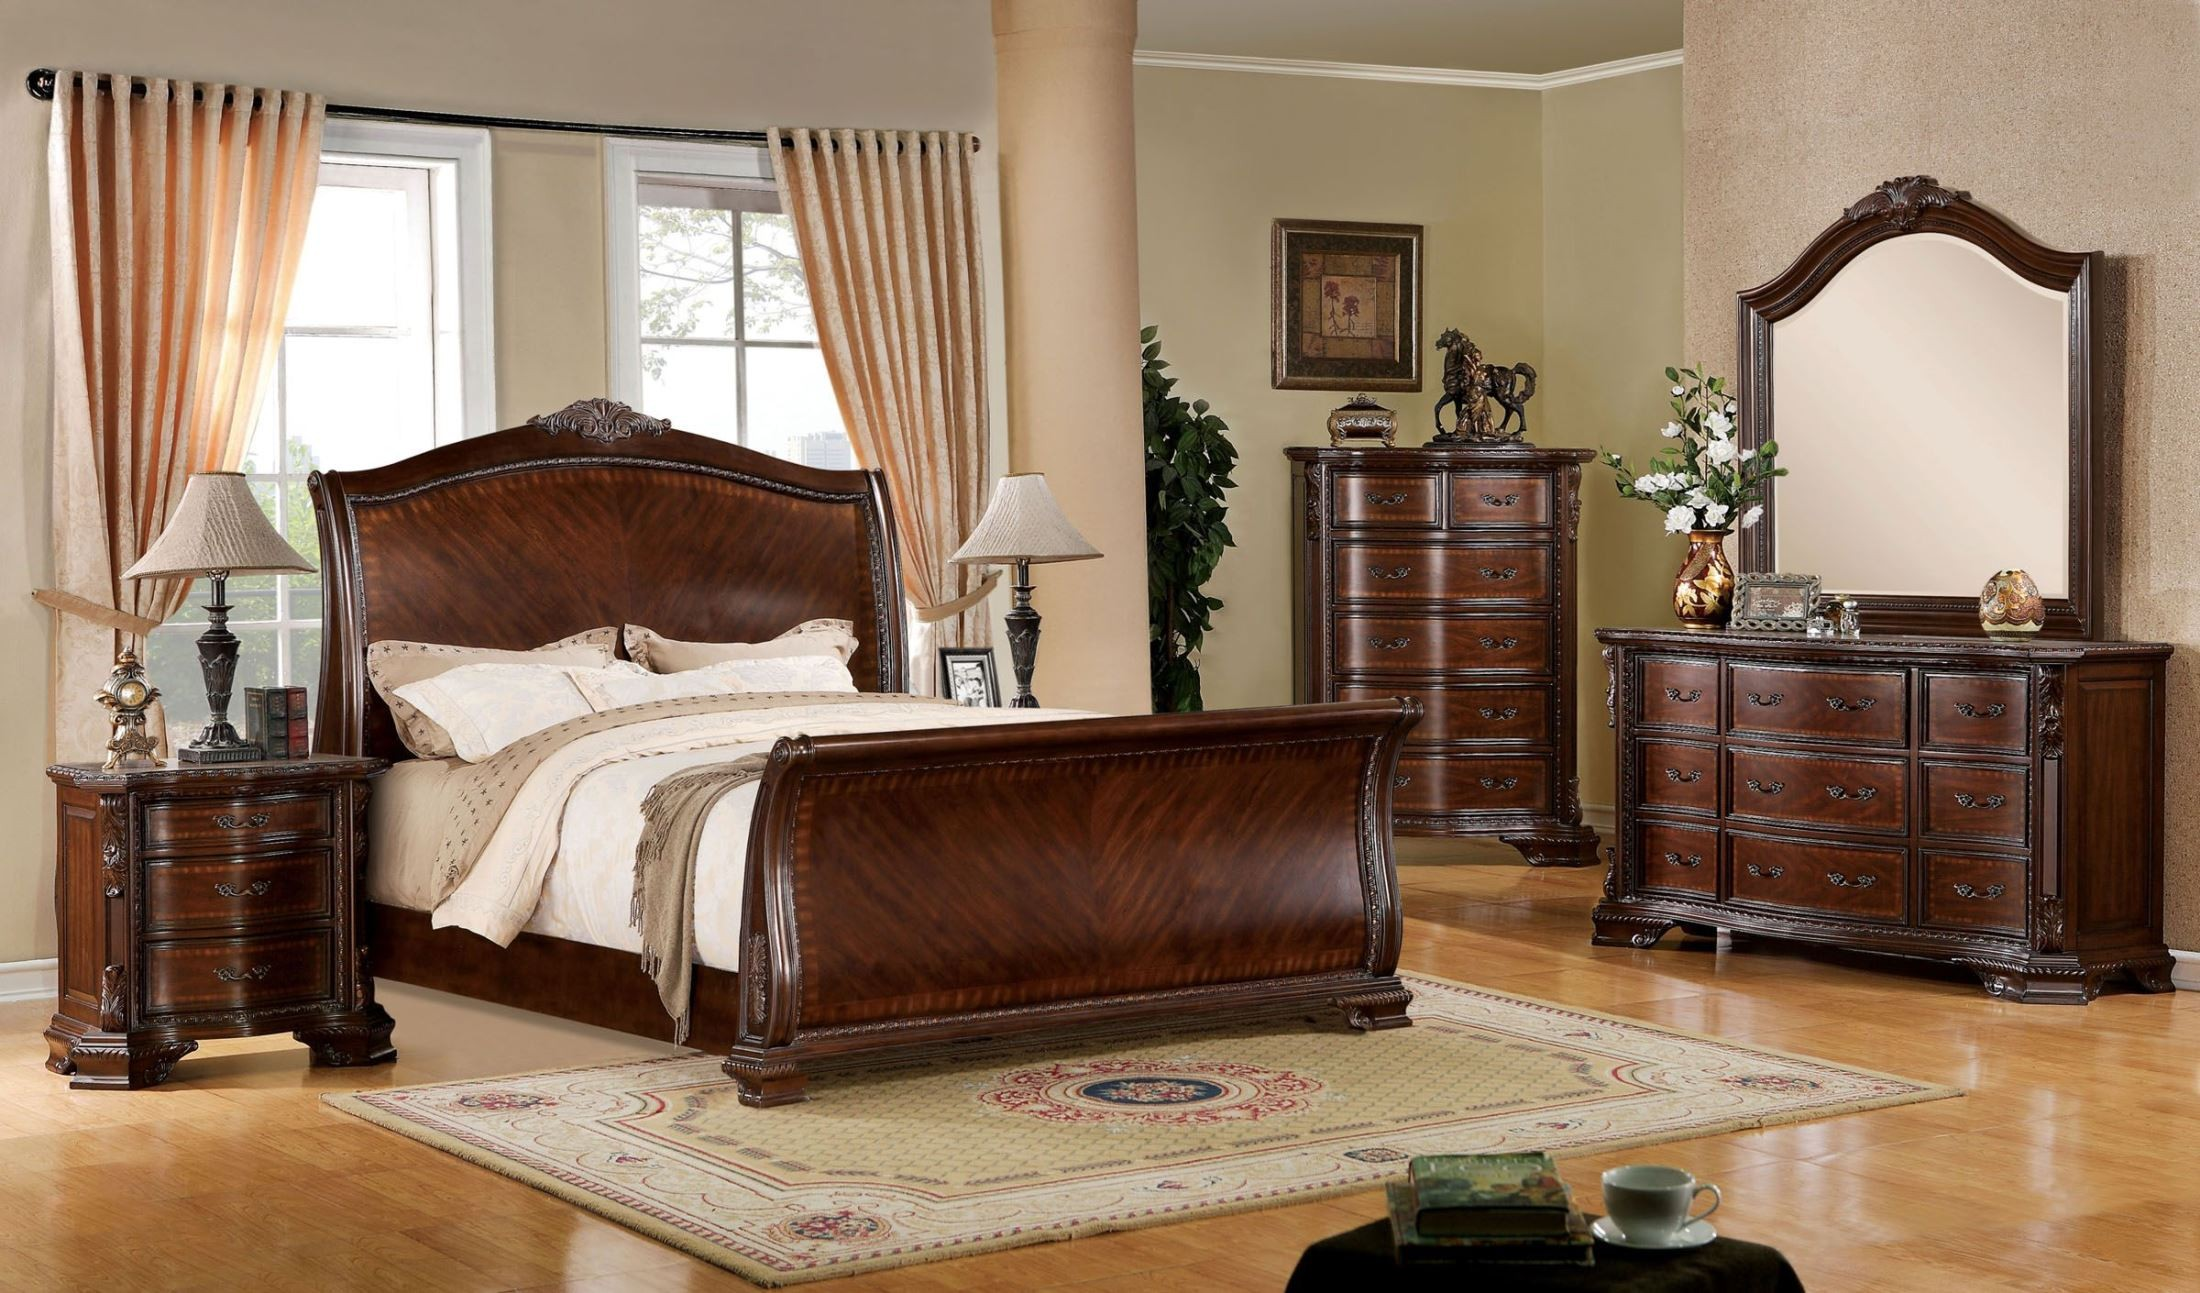 Penbroke brown cherry queen sleigh bed from furniture of america cm7270q bed coleman furniture for Bedroom furniture washington dc